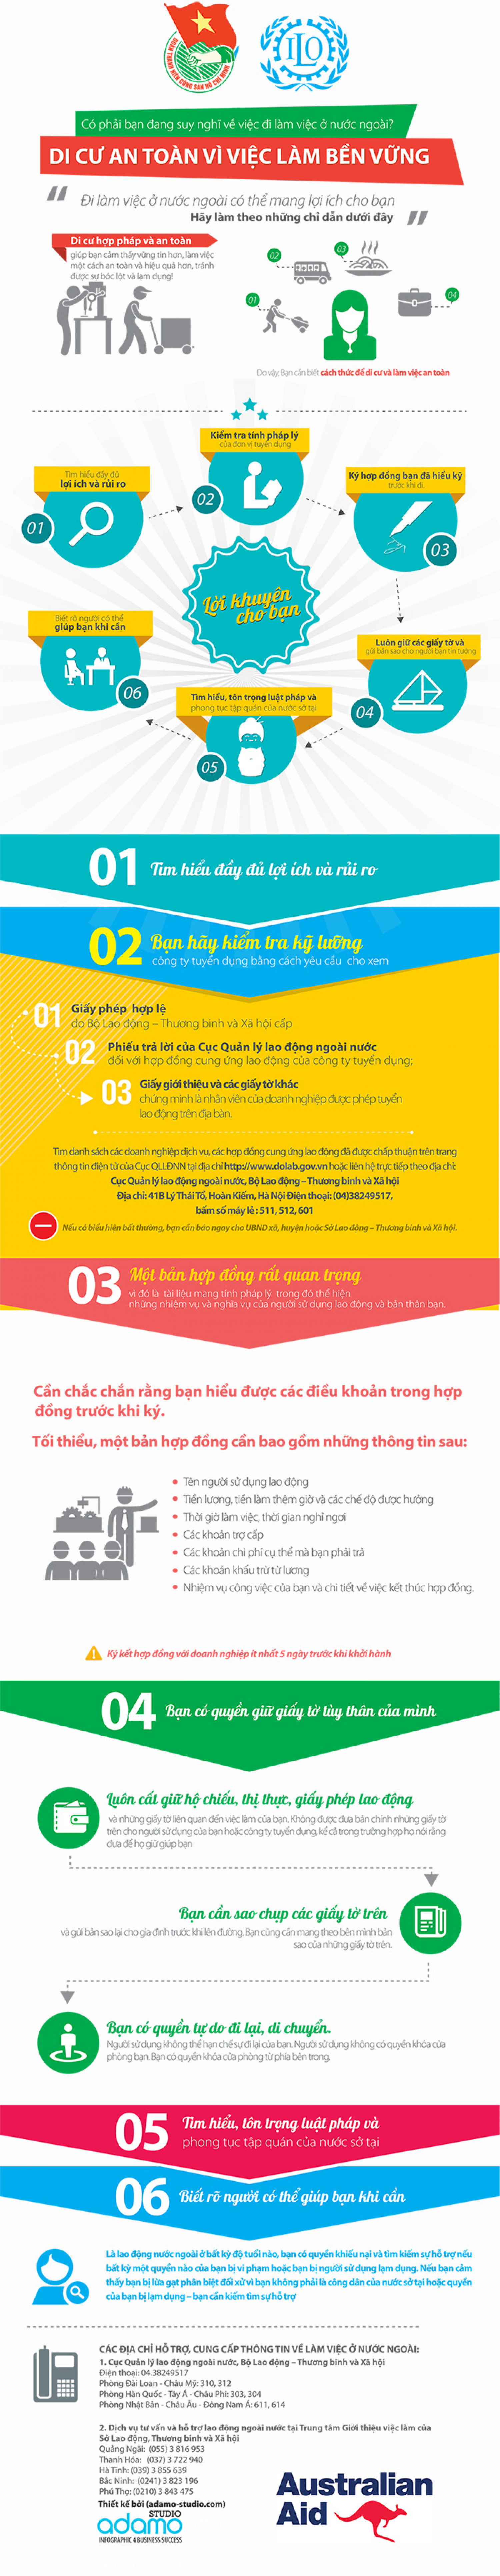 6 keys to labor migration safety for Vietnamese Youth Infographic